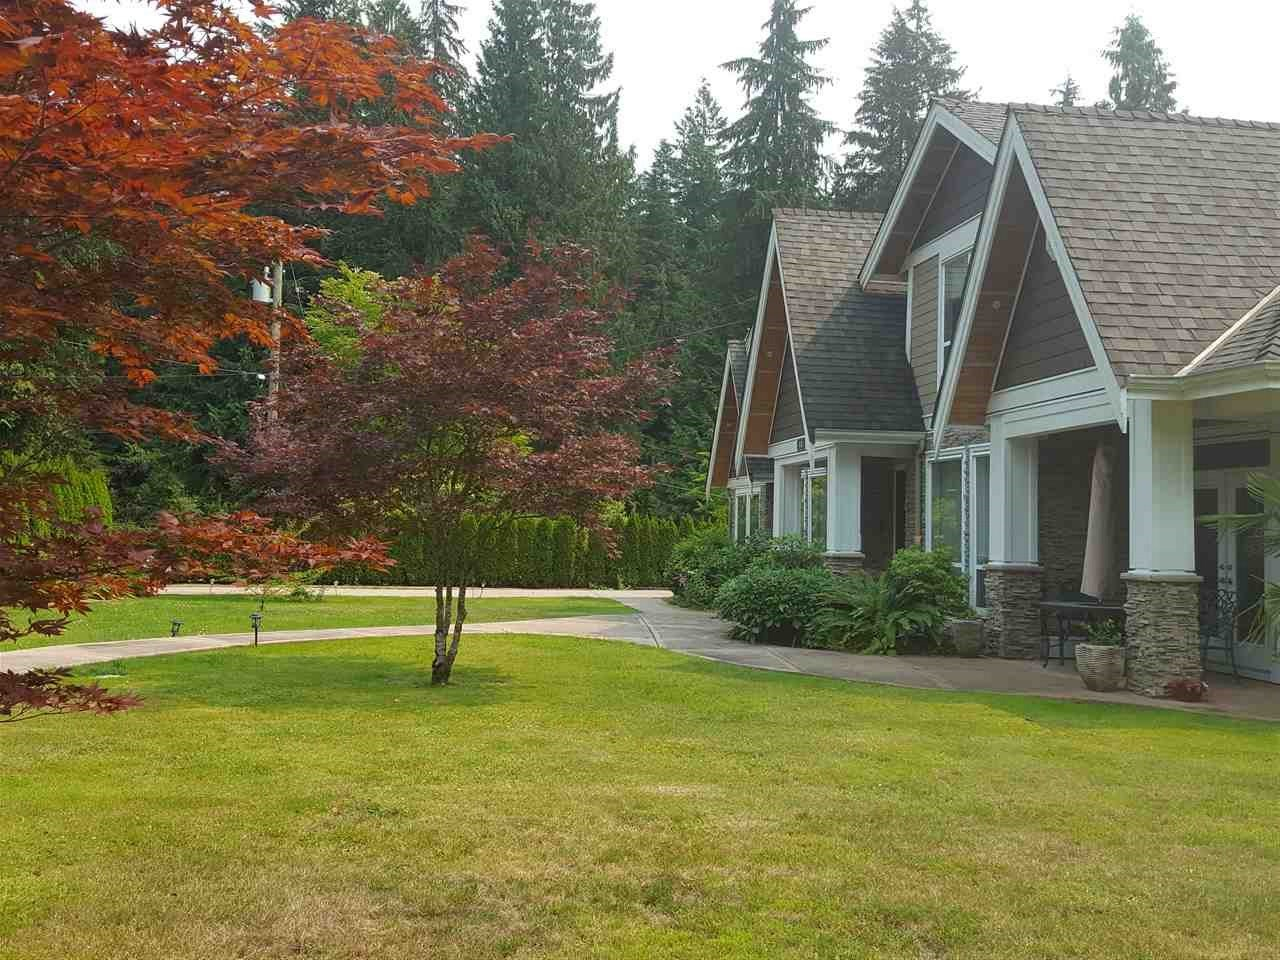 Detached at 316 MOYNE DRIVE, West Vancouver, British Columbia. Image 1